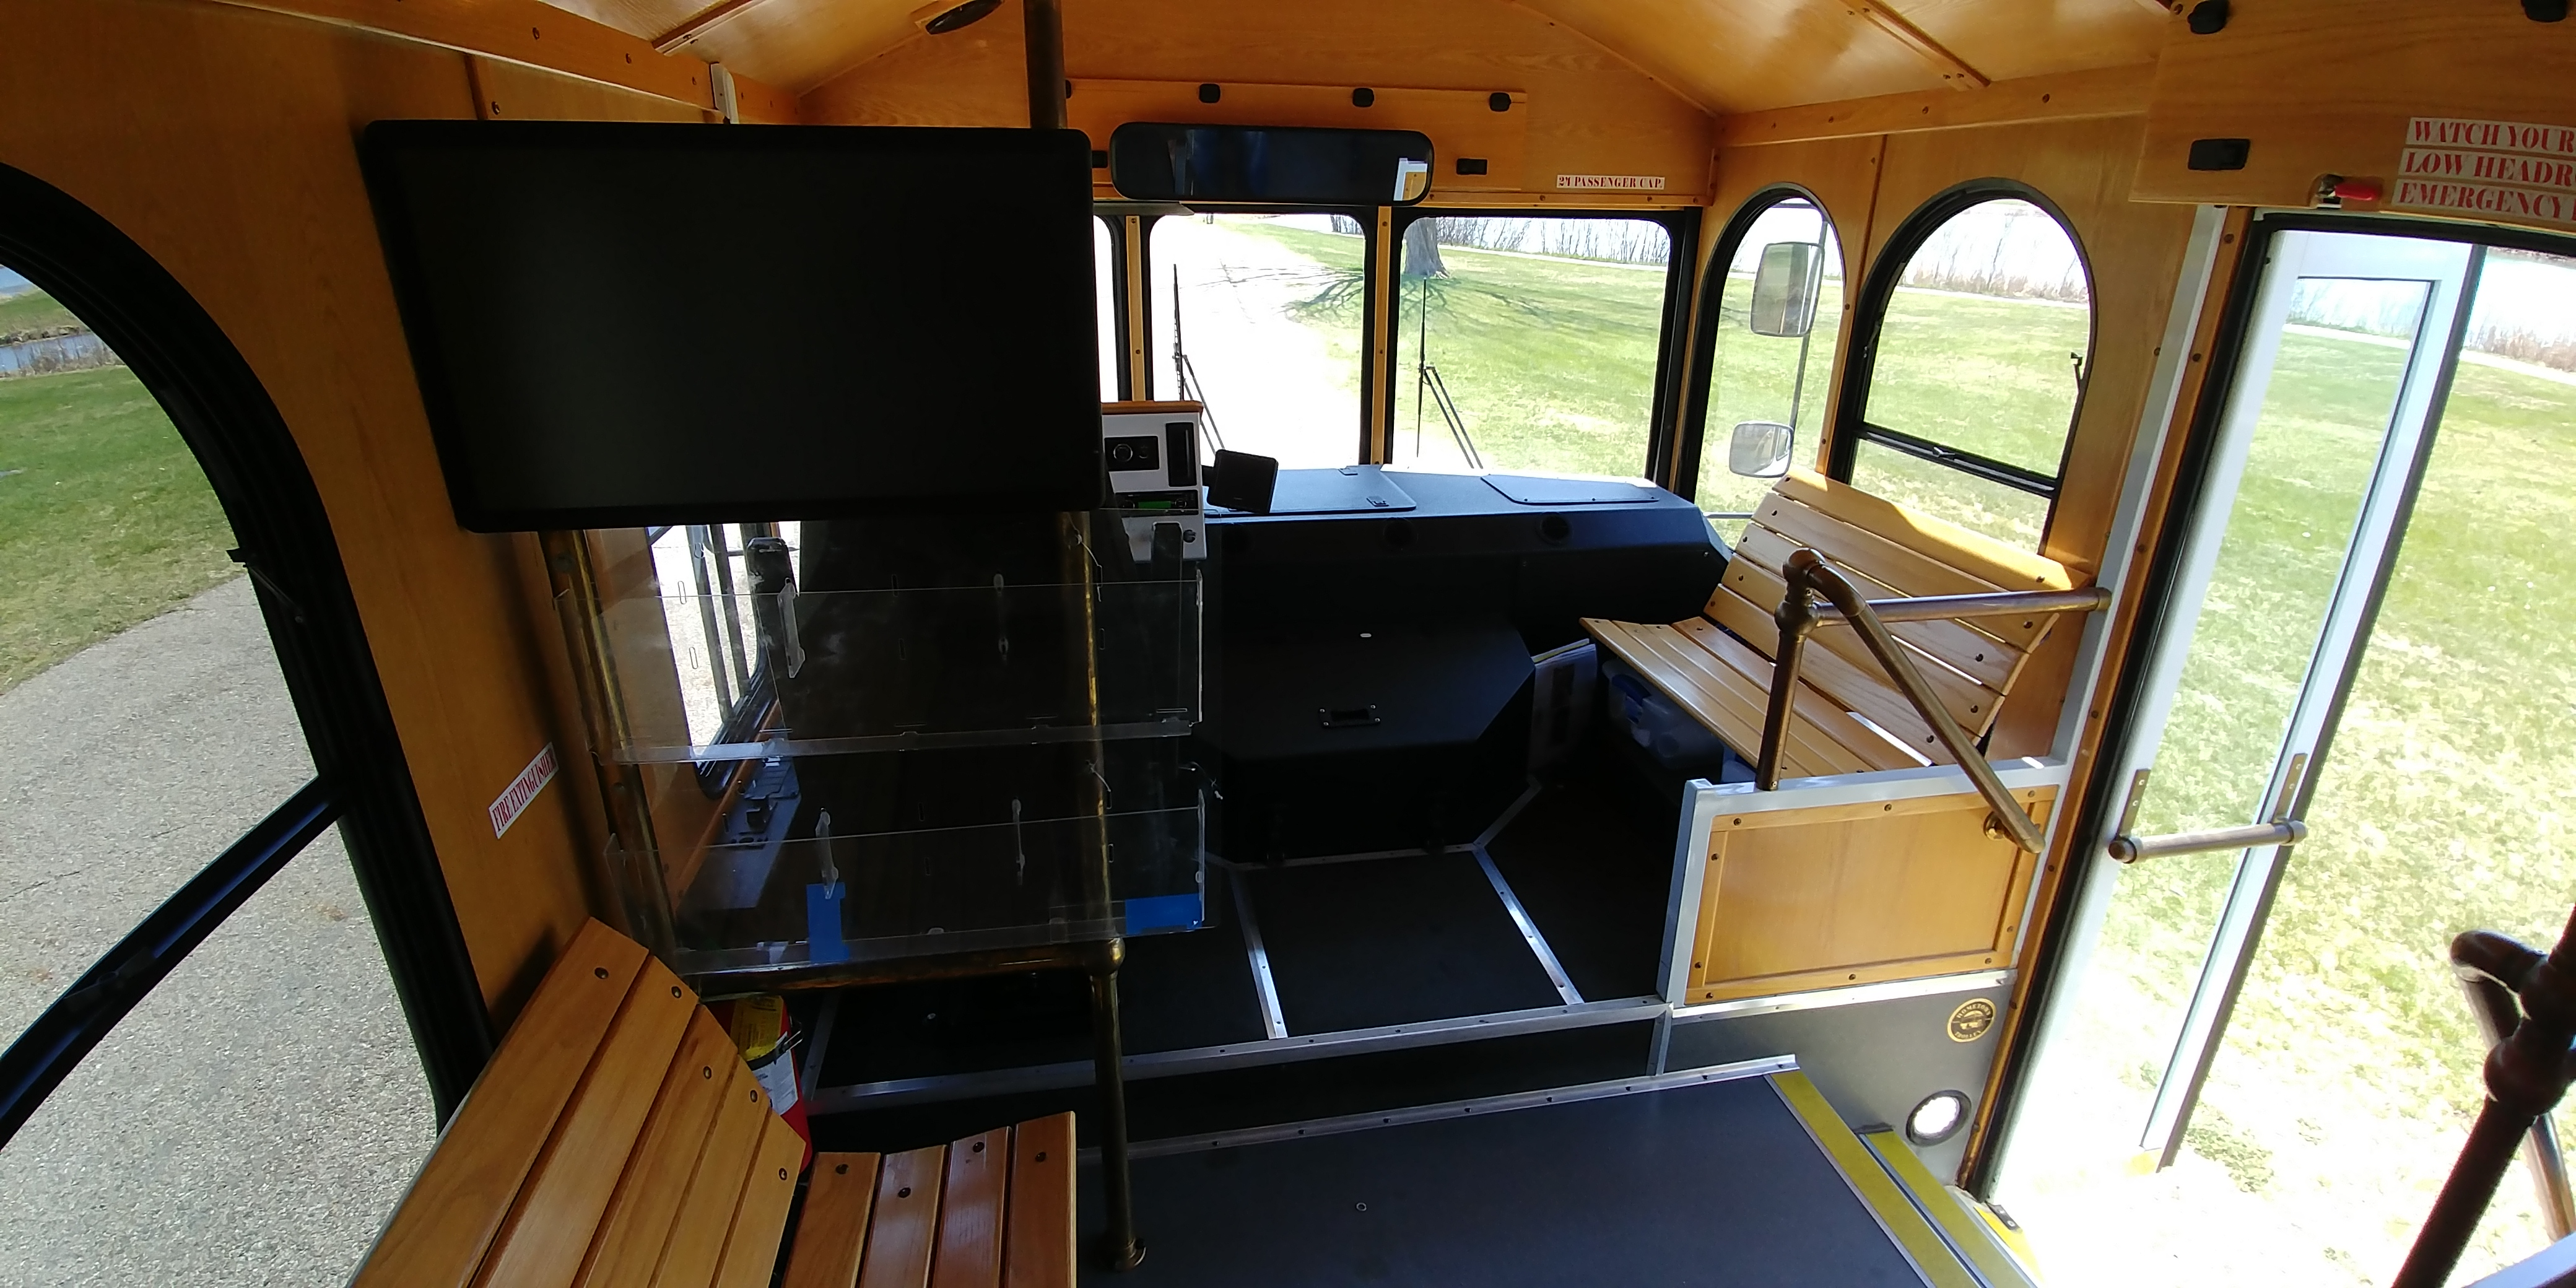 24 Passenger Trolley Interior 6